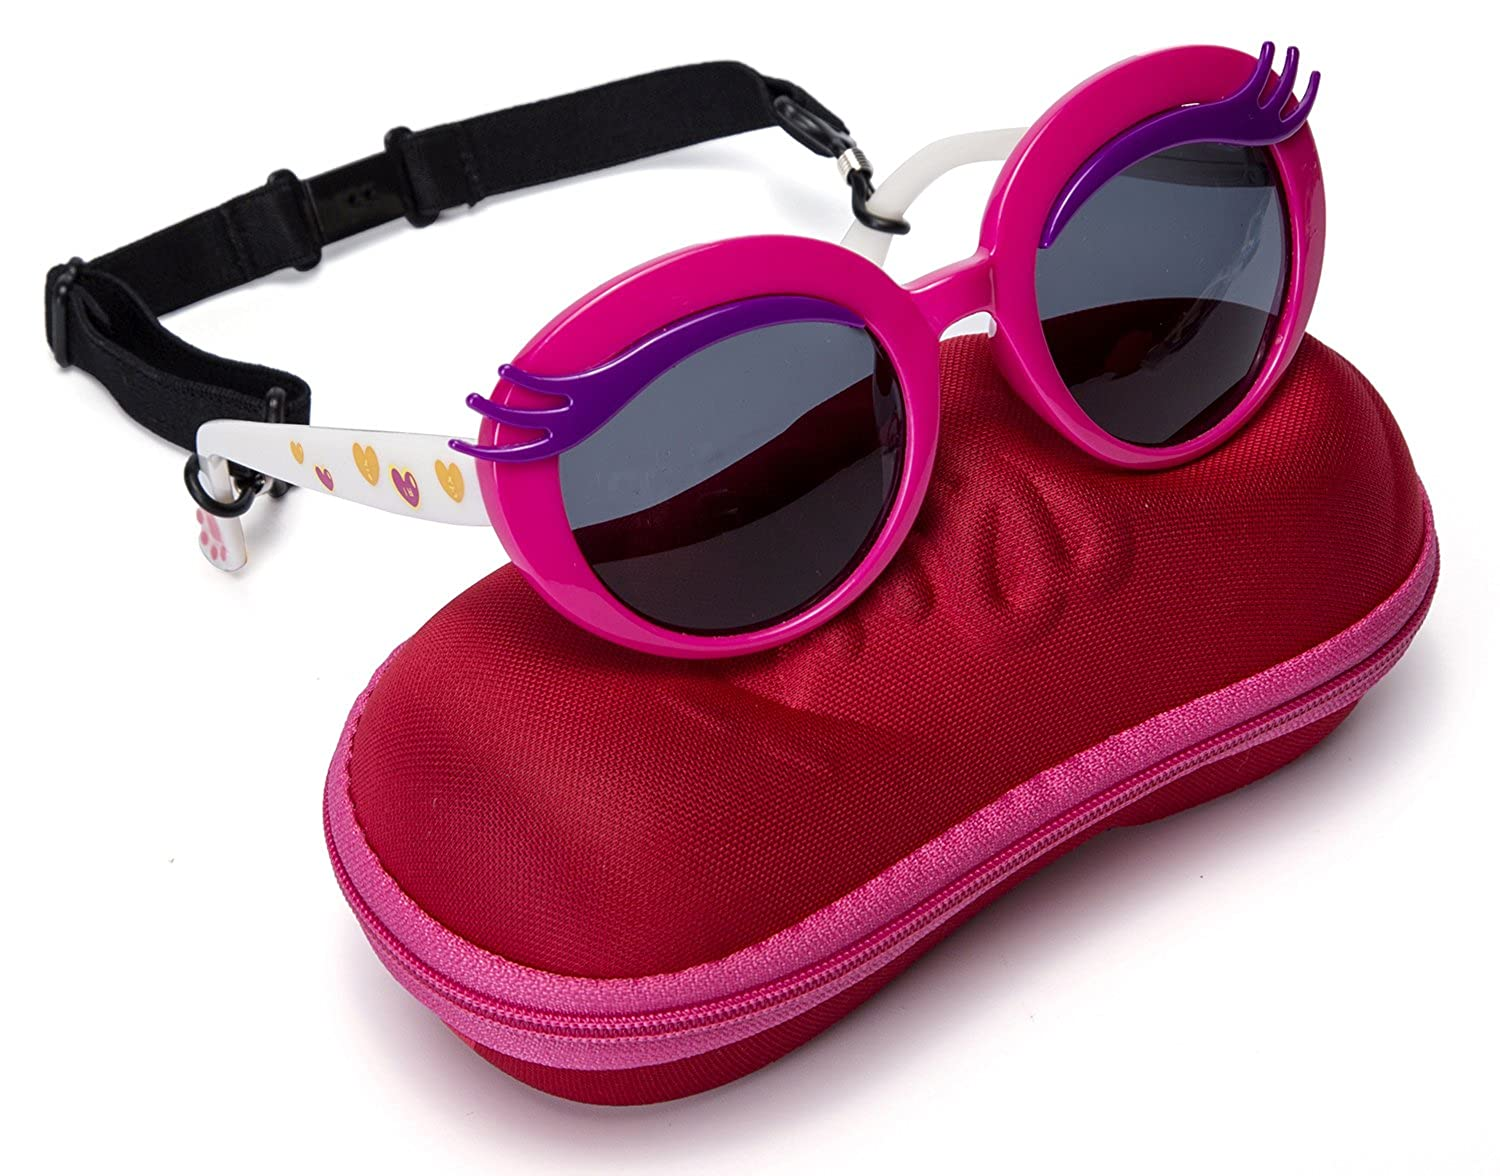 0255eb8c56a Comcl Girls Eyelash Polarized Sunglasses - UV Protection Kids Sunglasses  45mm Fit for Aged 4-